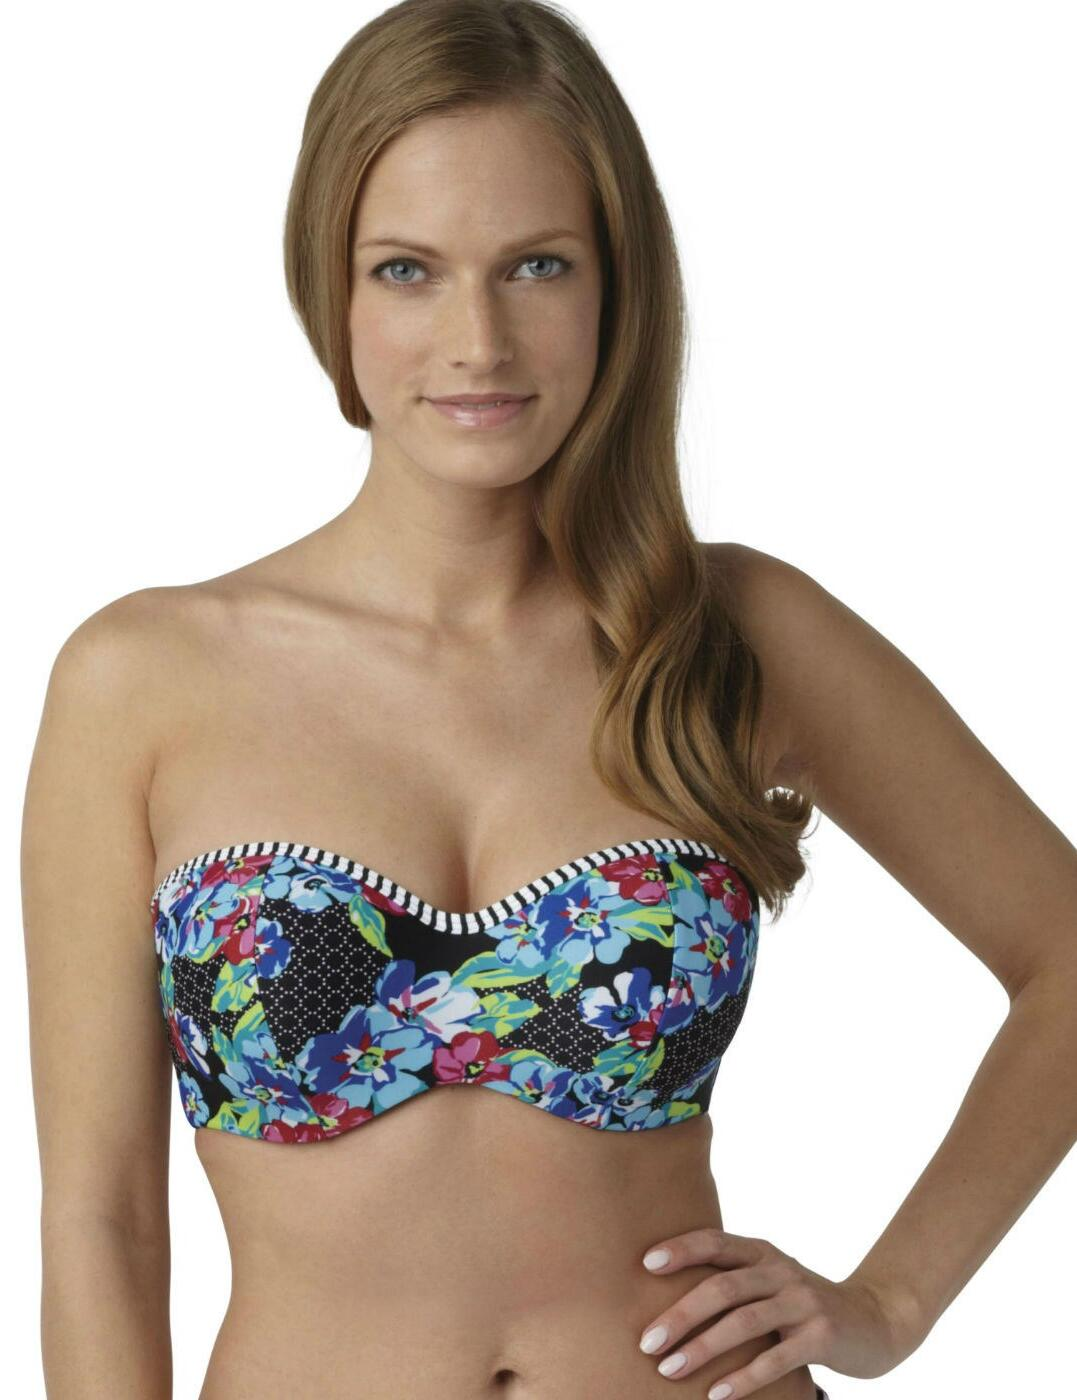 Find great deals on eBay for bikini top 42c. Shop with confidence.